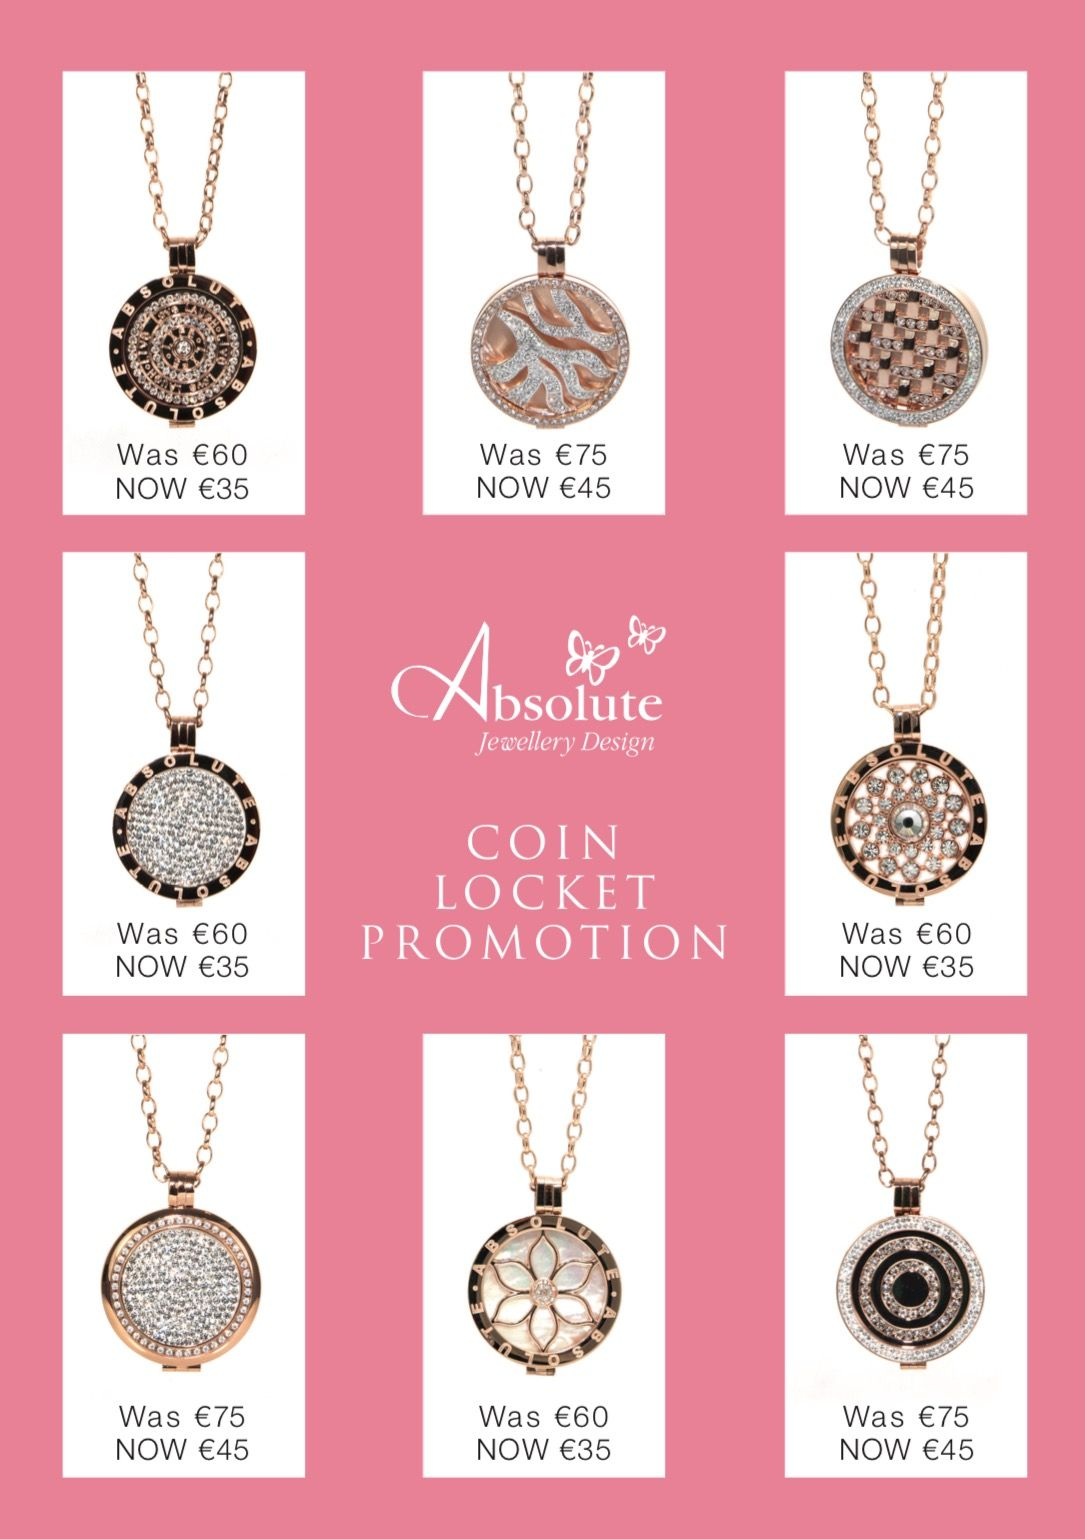 wear lockets style coin pin insert offers petit ability match with change a perfect the pendant in changing your versatility this way mini to